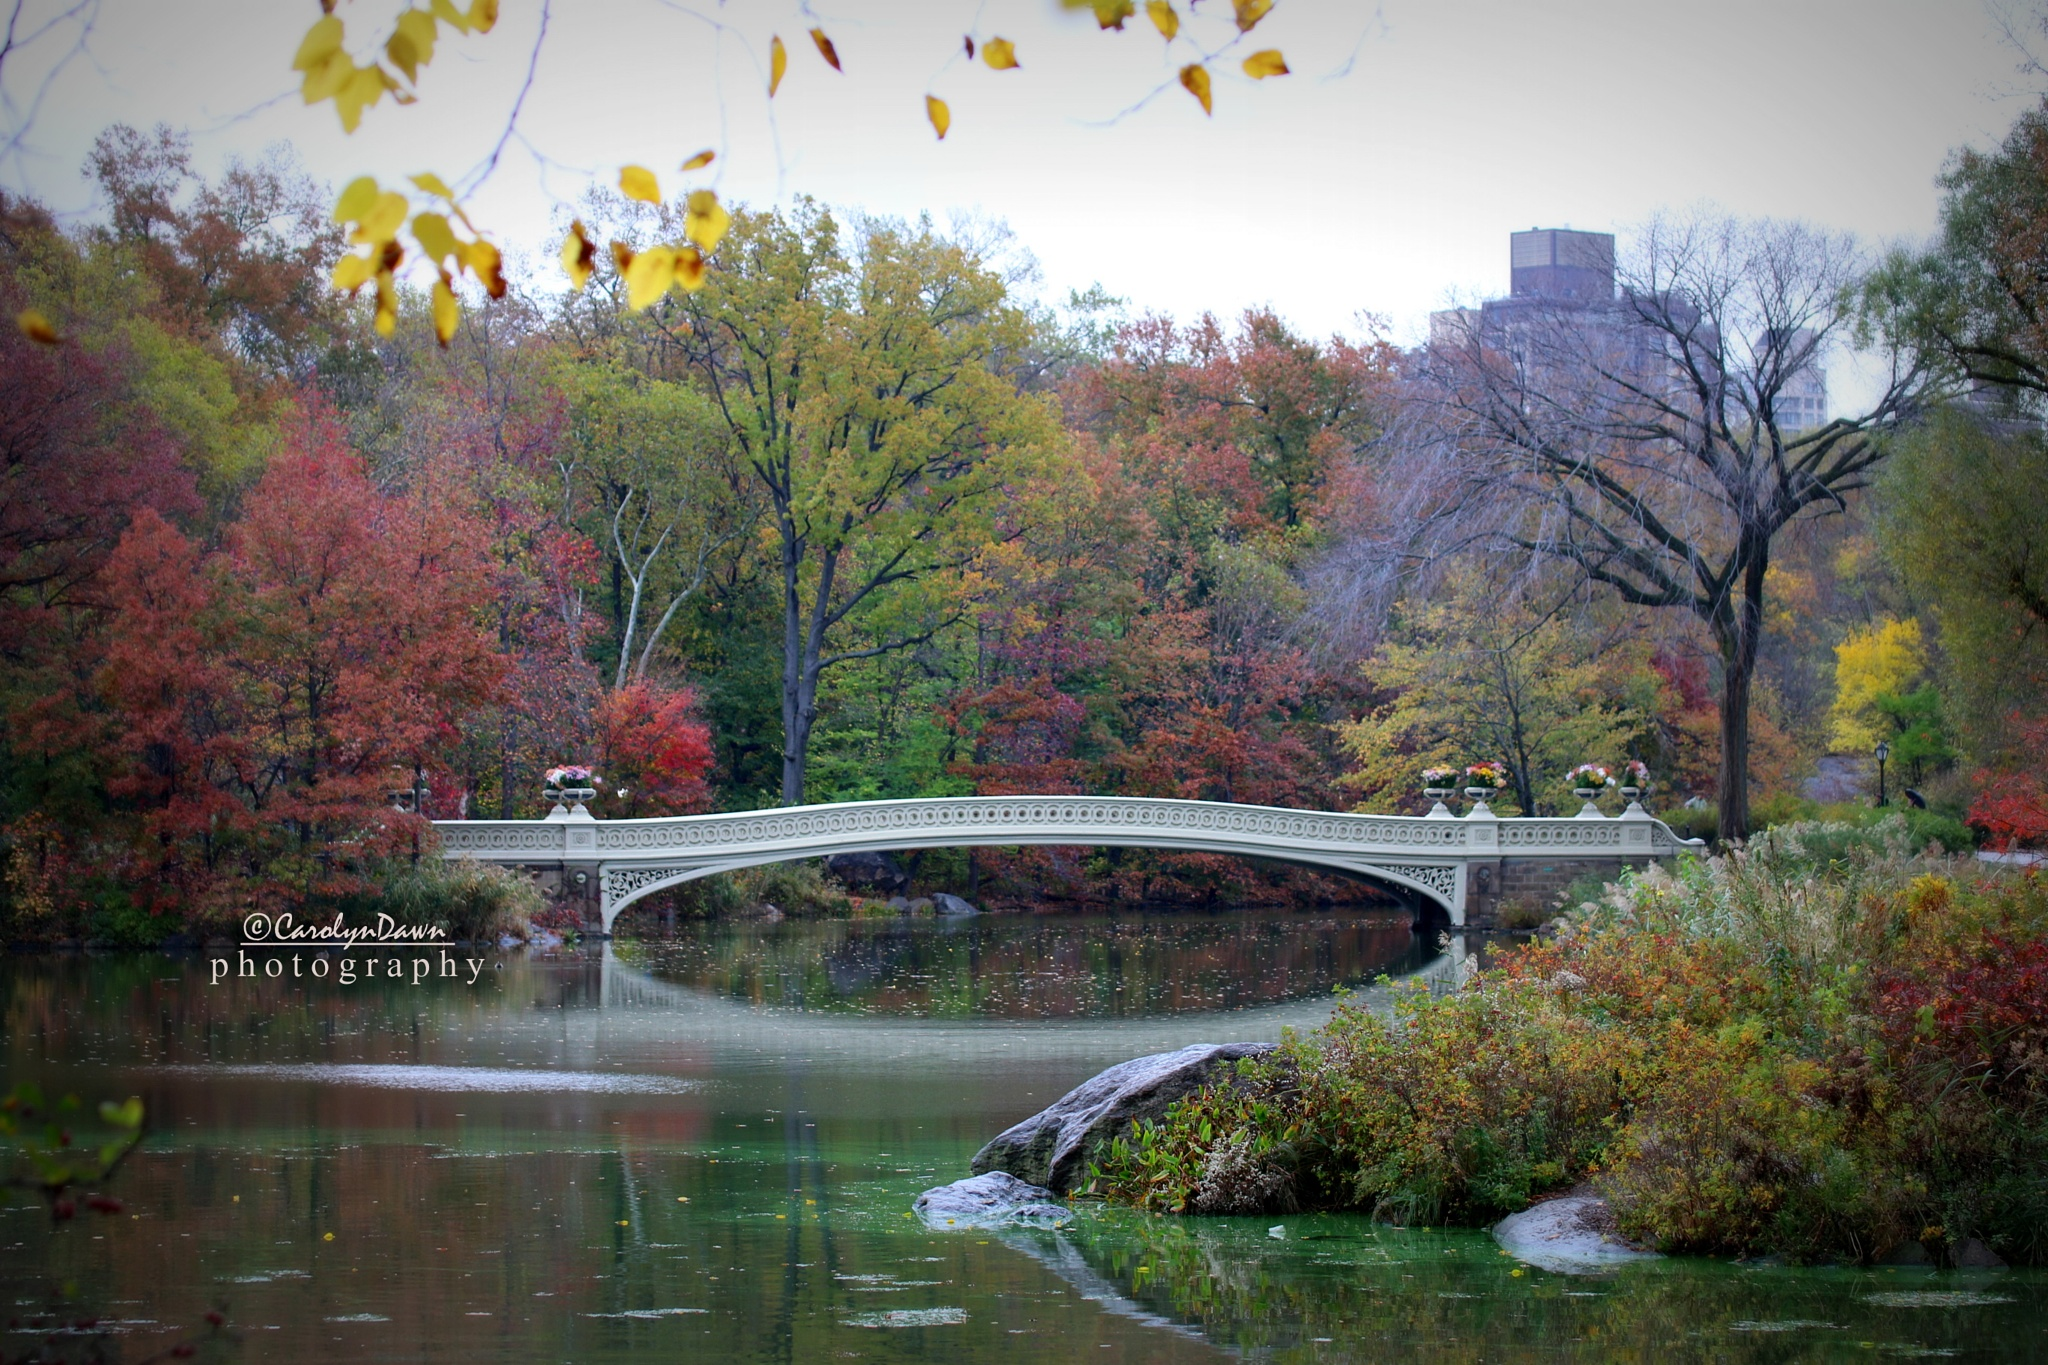 Central Park's Bow Bridge, Manhattan by CarolynDawn11